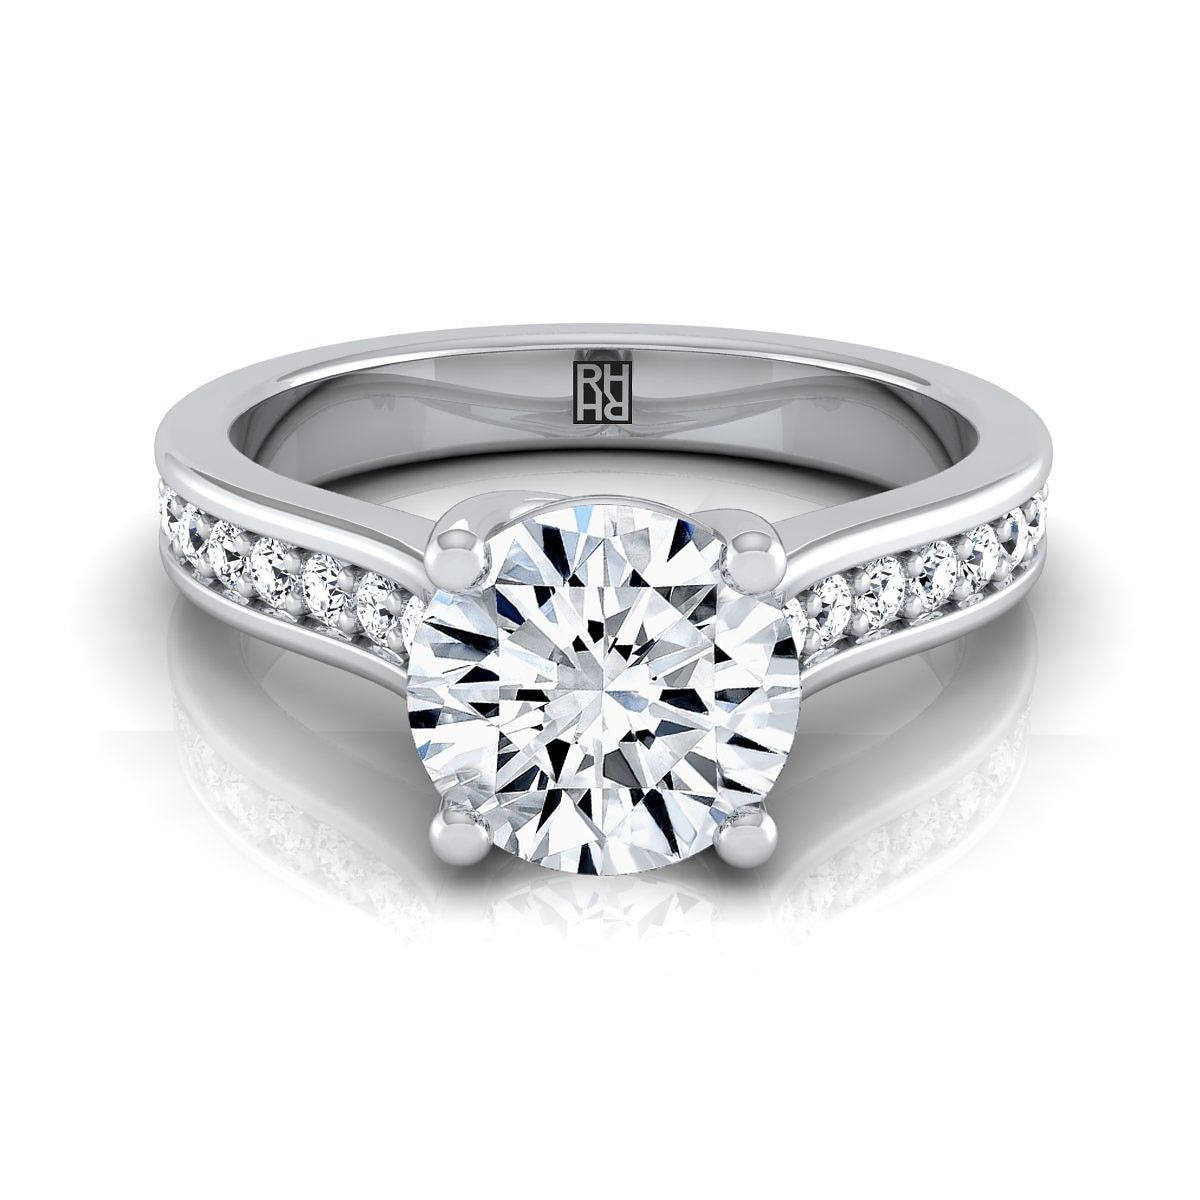 Diamond Solitaire Engagement Ring With Pave Shank In 14k White Gold 1 3 Ct Tw Engagement Rings Channel Set Classic Engagement Rings Engagement Rings